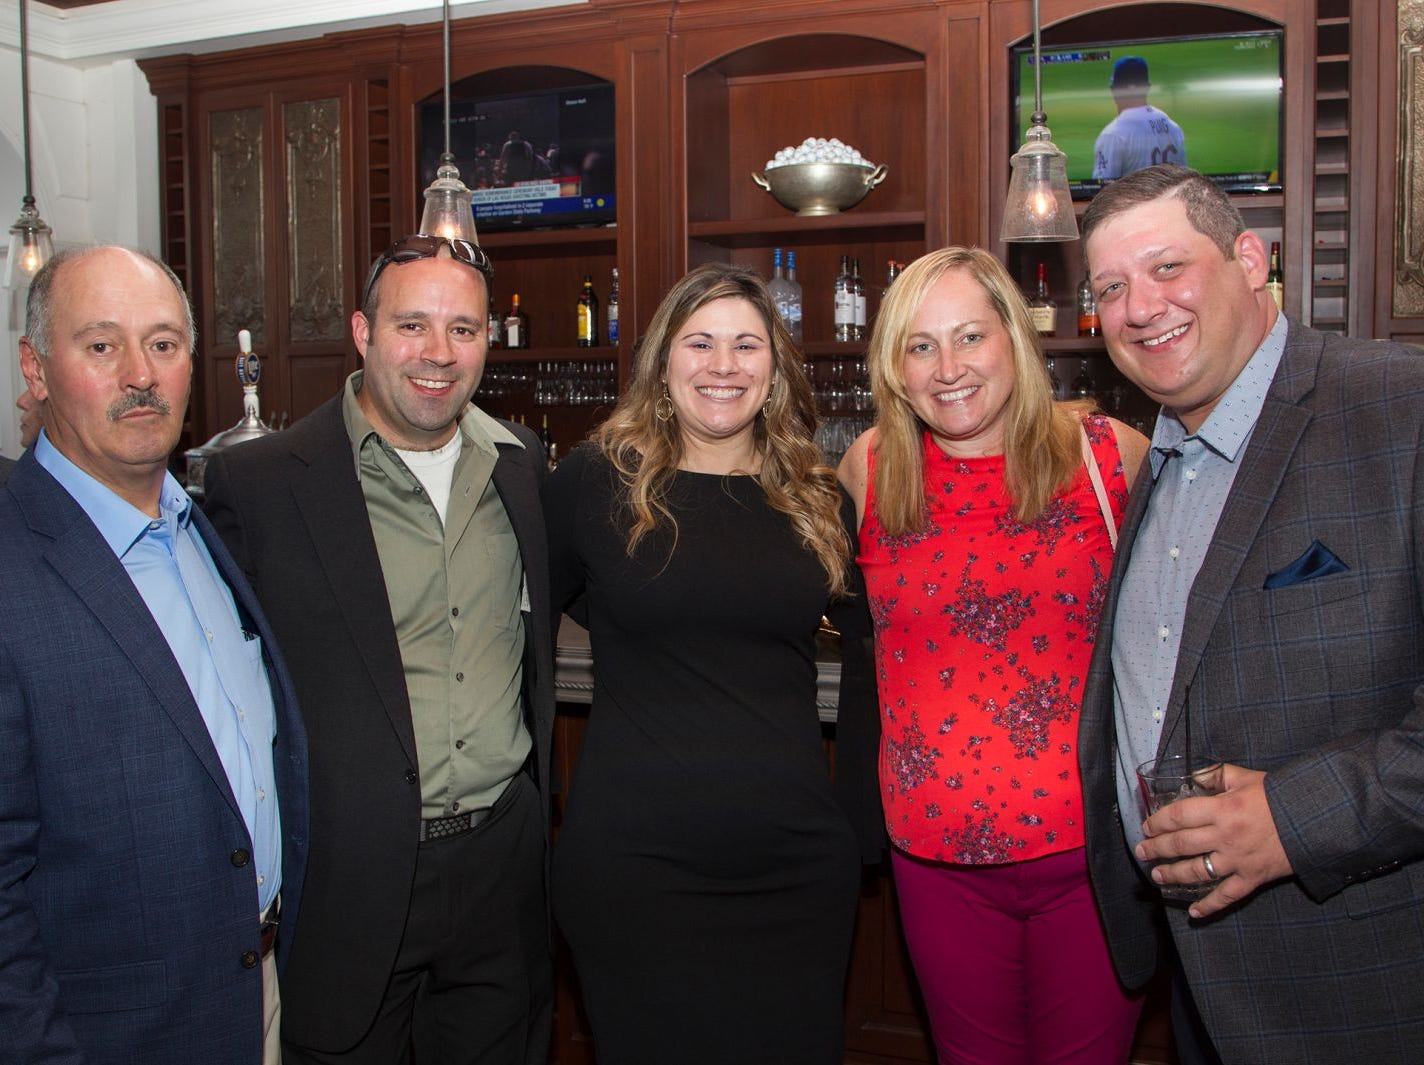 Steve  Unger Sr., Steve unger Jr., Lisa Picinic, Rebecca Unger, Wesley Picinic. Institute for Educational Achievement held its 23rd annual Golf Classic at Hackensack Golf Club in Oradell. 10/01/2018